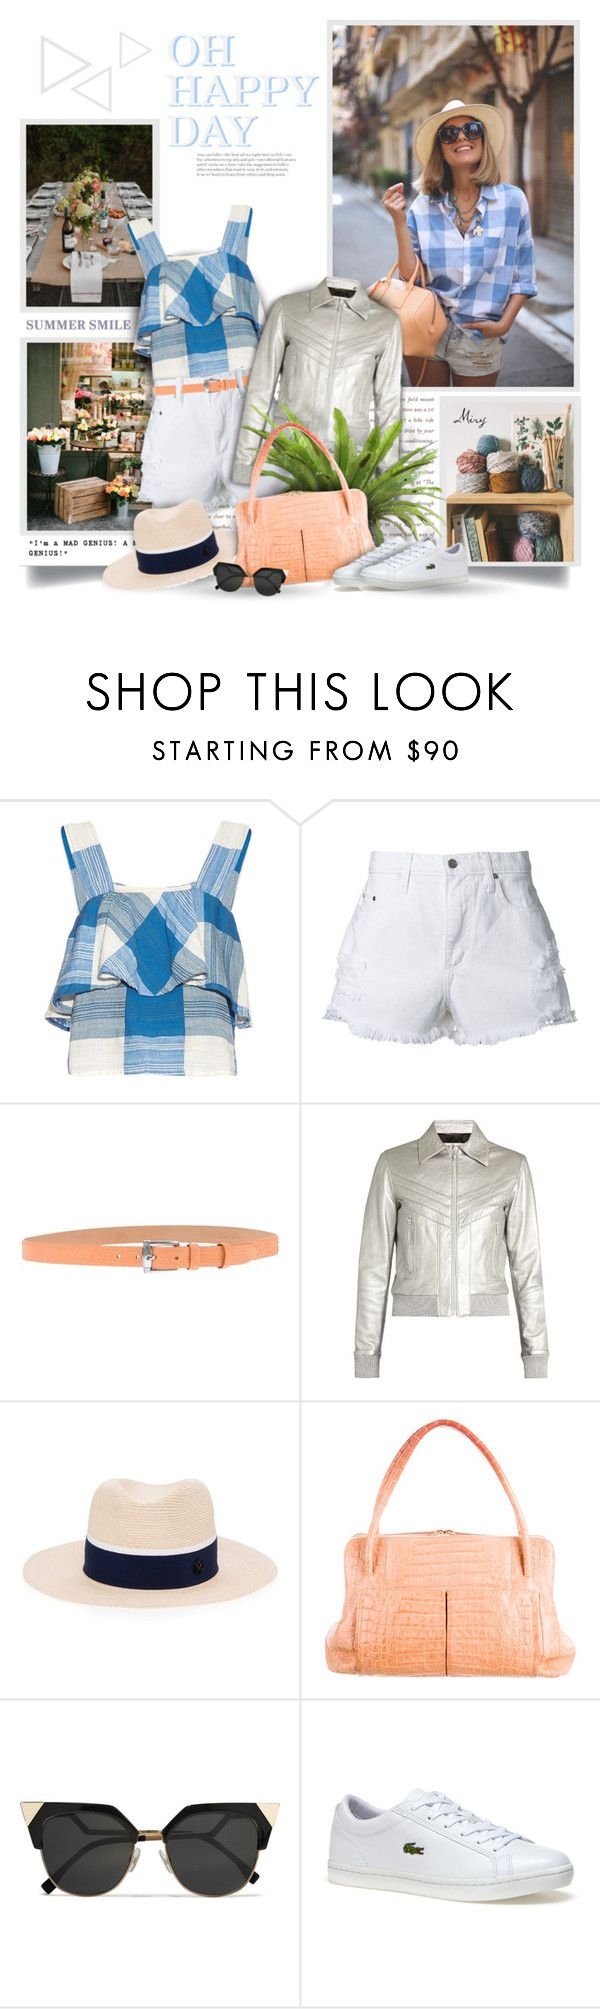 """""""Sweet Little Sunday"""" by thewondersoffashion ❤ liked on Polyvore featuring ace & jig, Nobody Denim, Yves Saint Laurent, Maison Michel, Nancy Gonzalez, Fendi and Lacoste"""